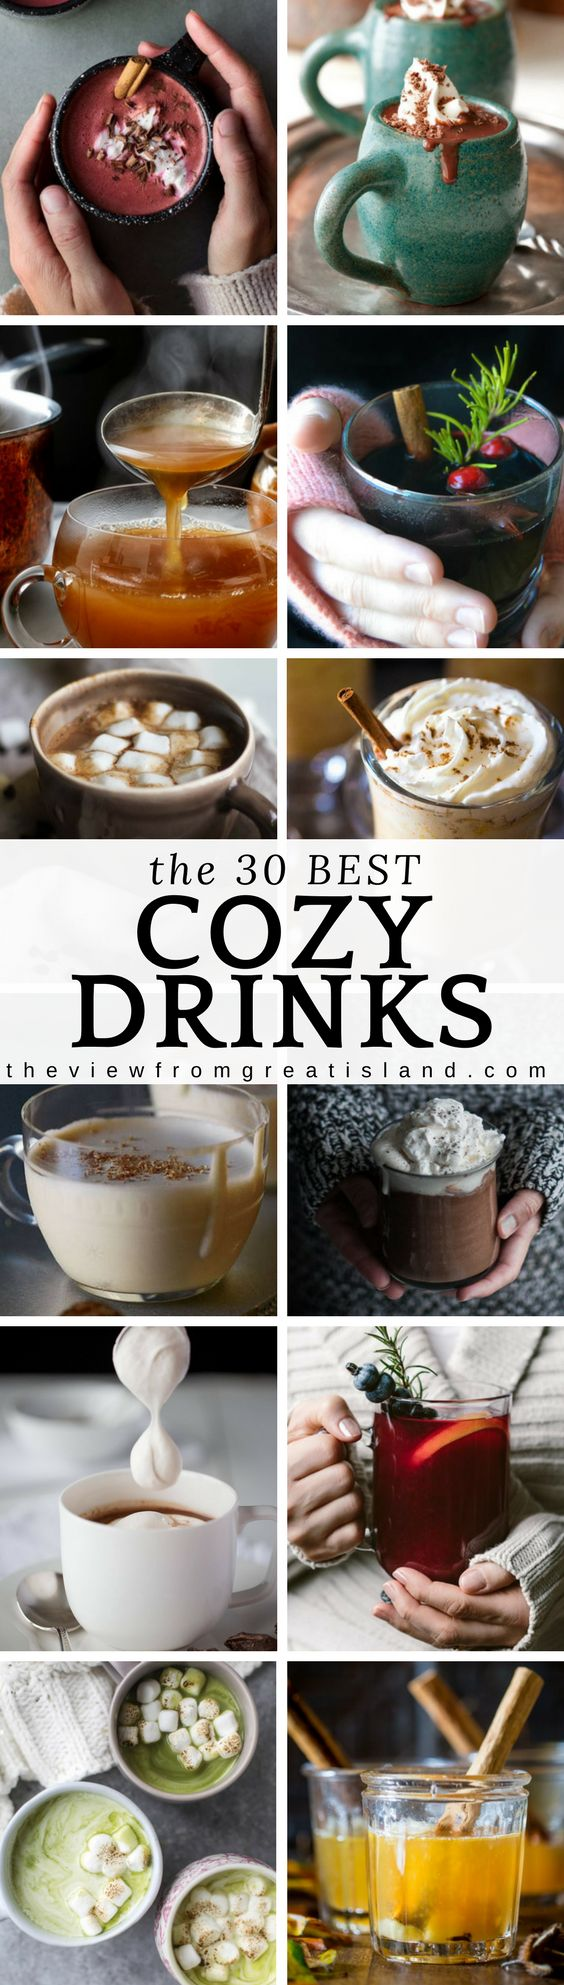 What to Sip Now: Cozy Drinks ~ here are the 30 COZIEST hot beverages perfect for cold winter sipping...everything from hot cocoa to pumpkin steamers!